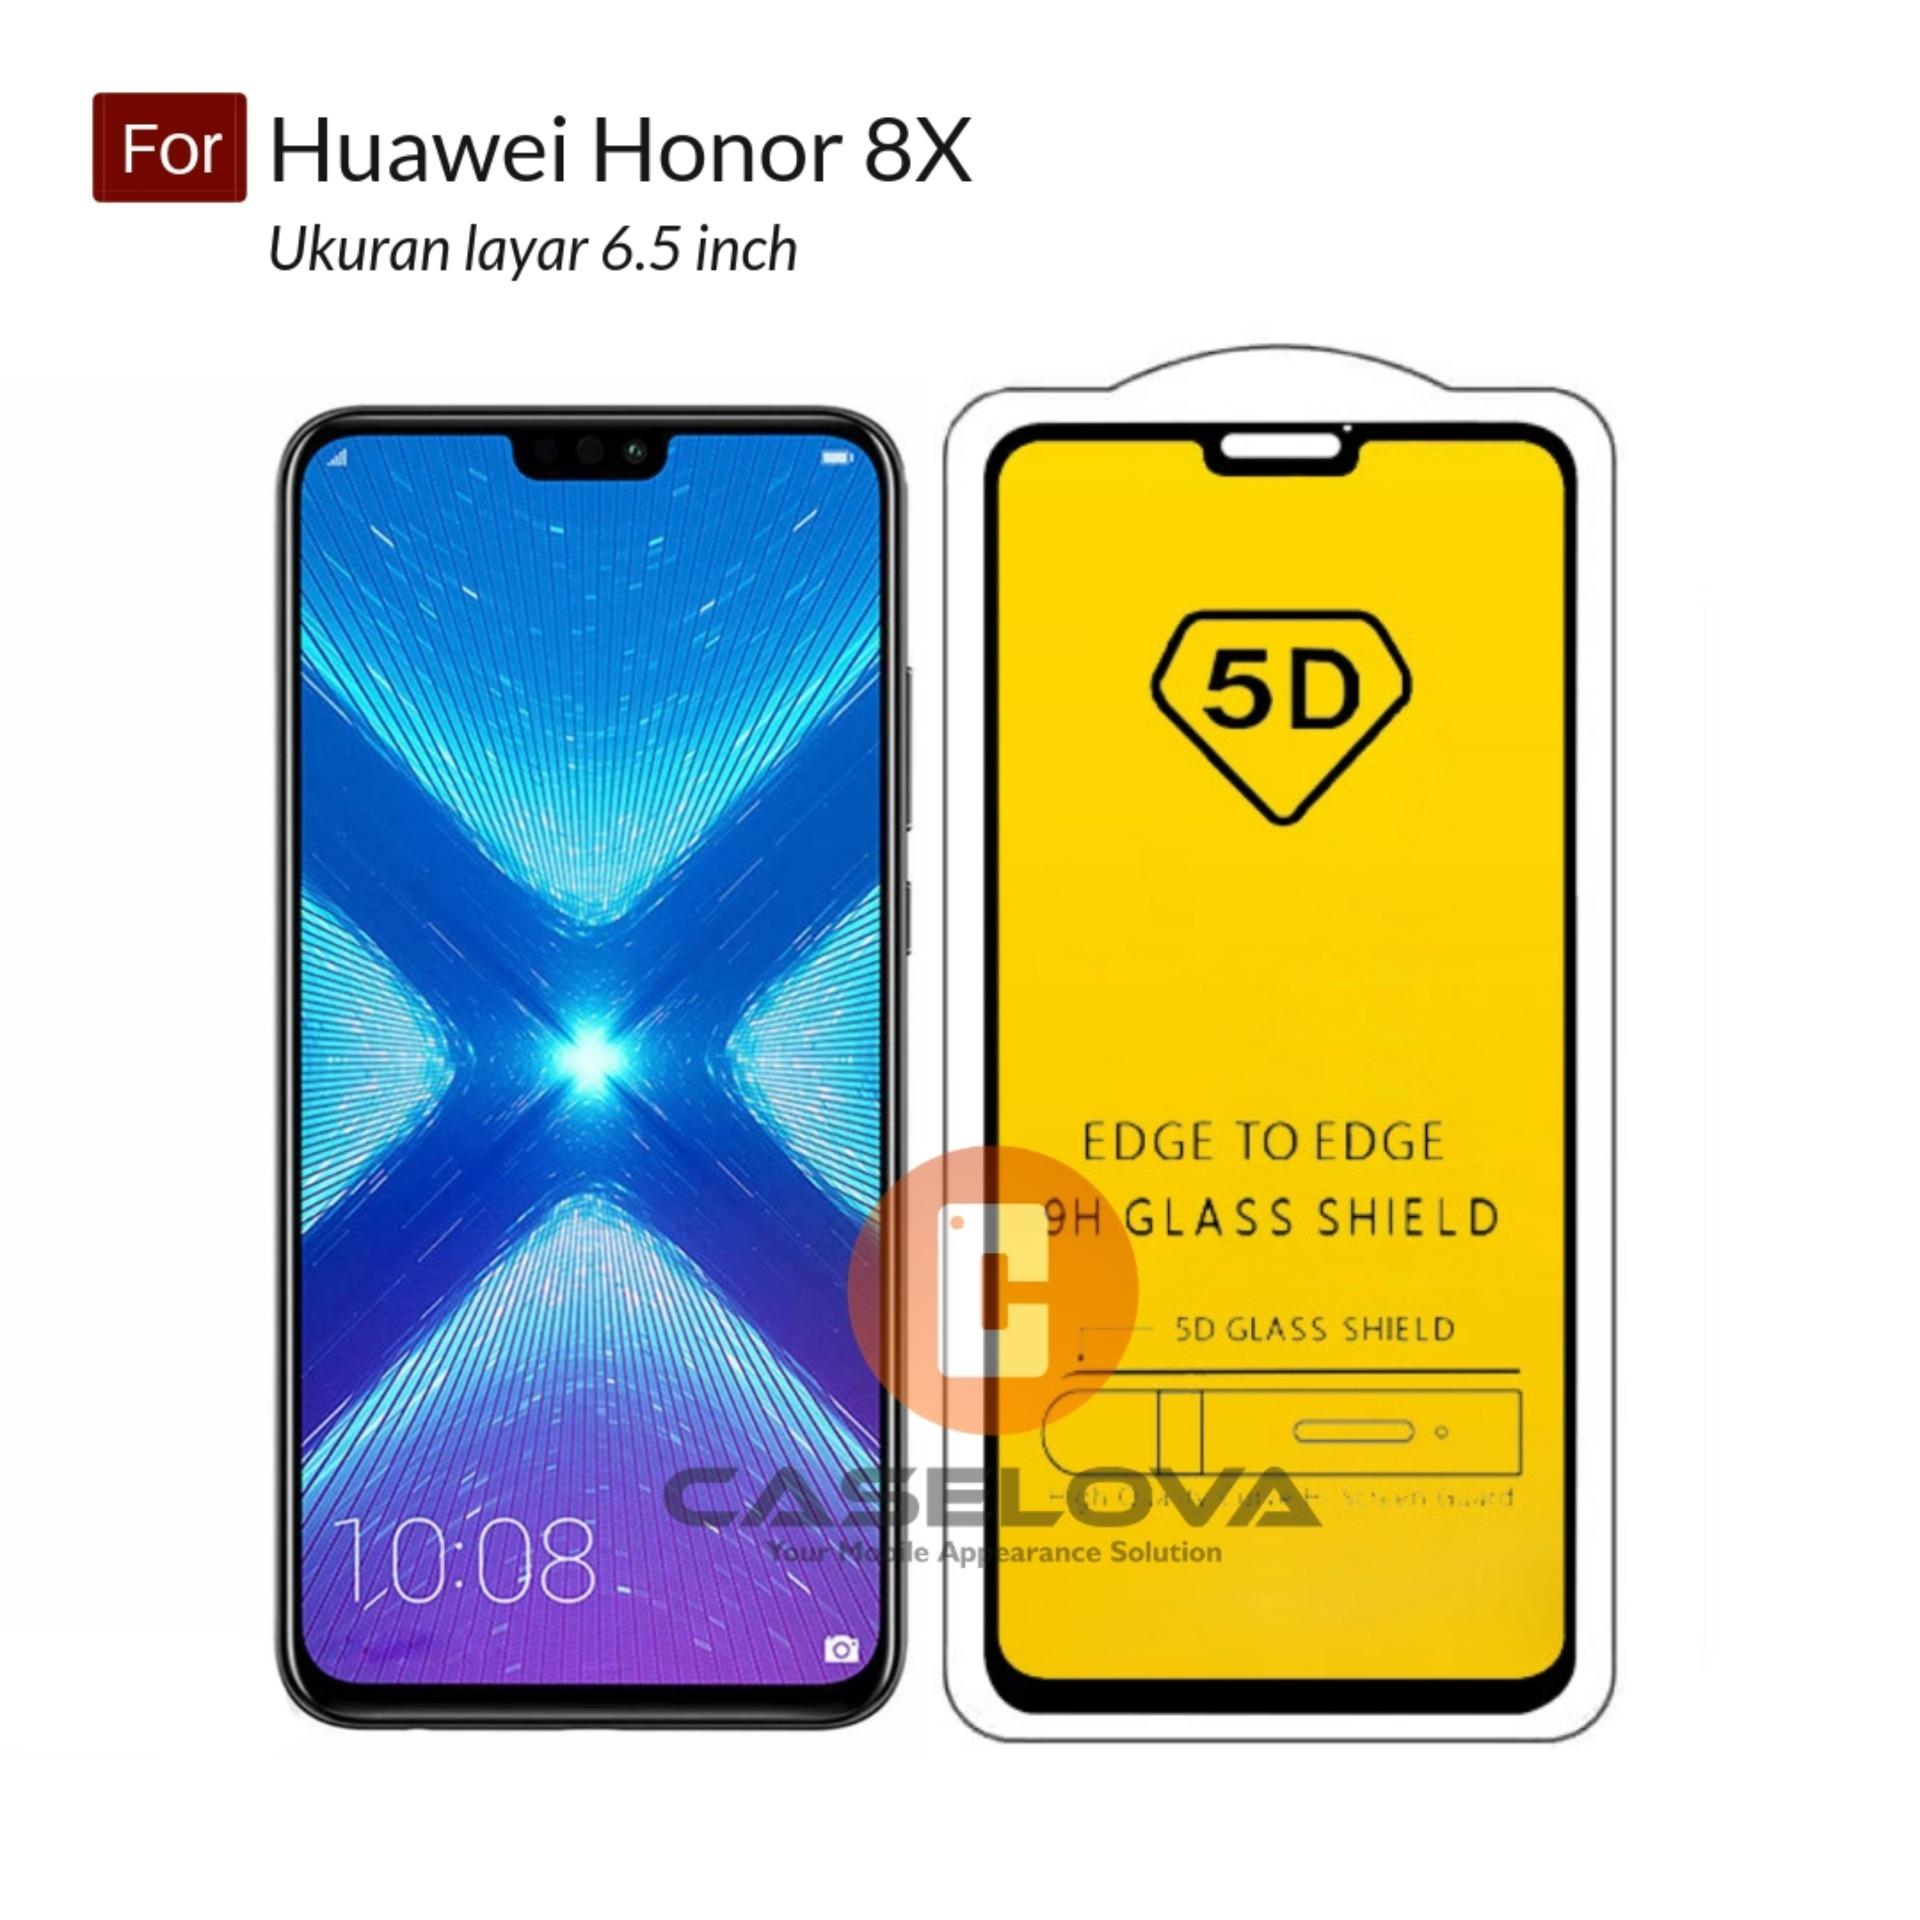 ... Xiaomi Redmi 5 Plus New Note. Source · Caselova Premium Full Cover Tempered Glass 5D Round Curved Edge For Huawei Honor 8X ( 6.5